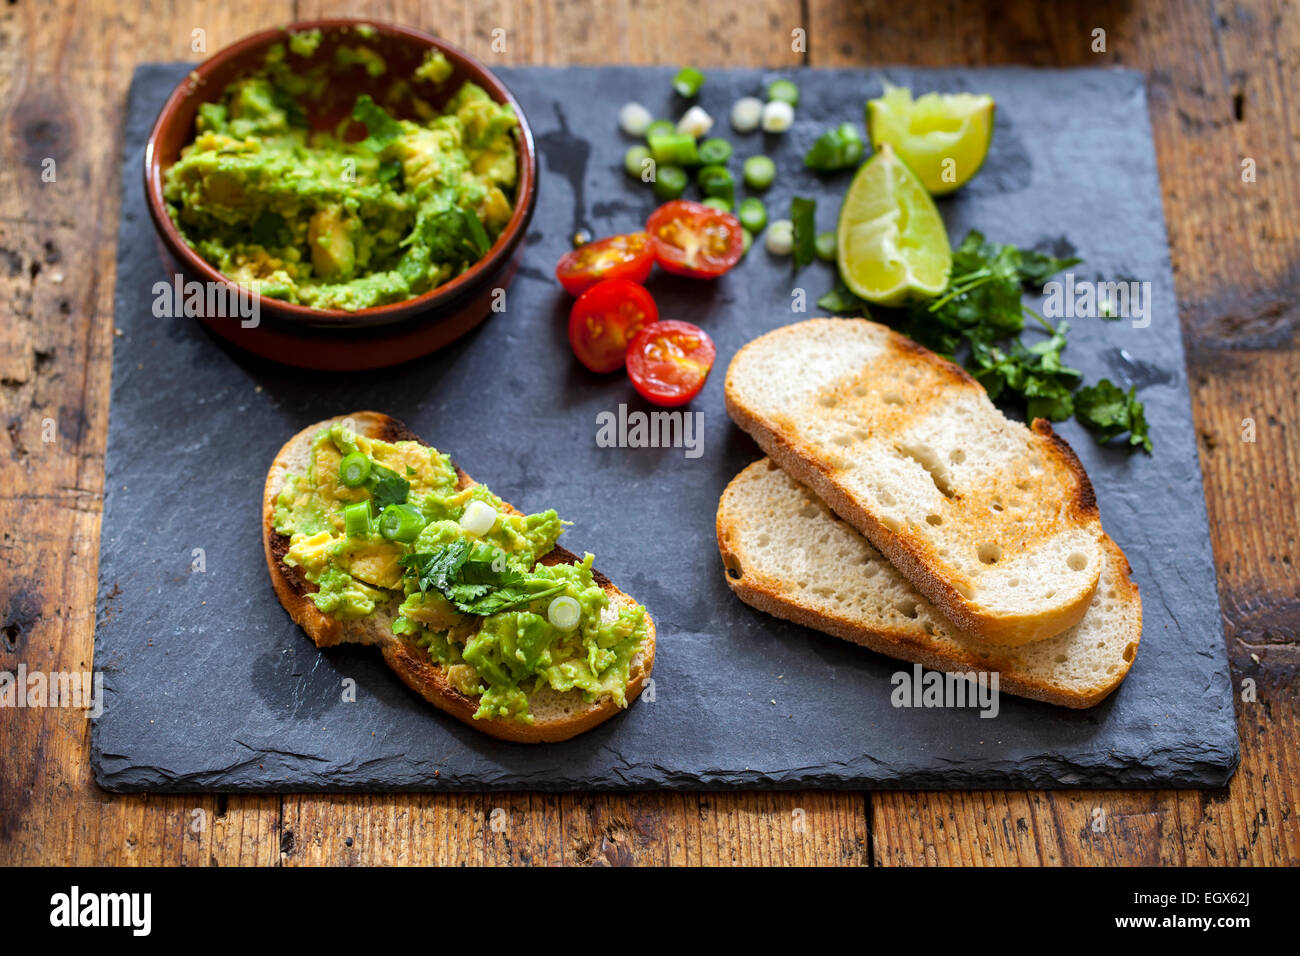 Canapes with avocado spread - Stock Image